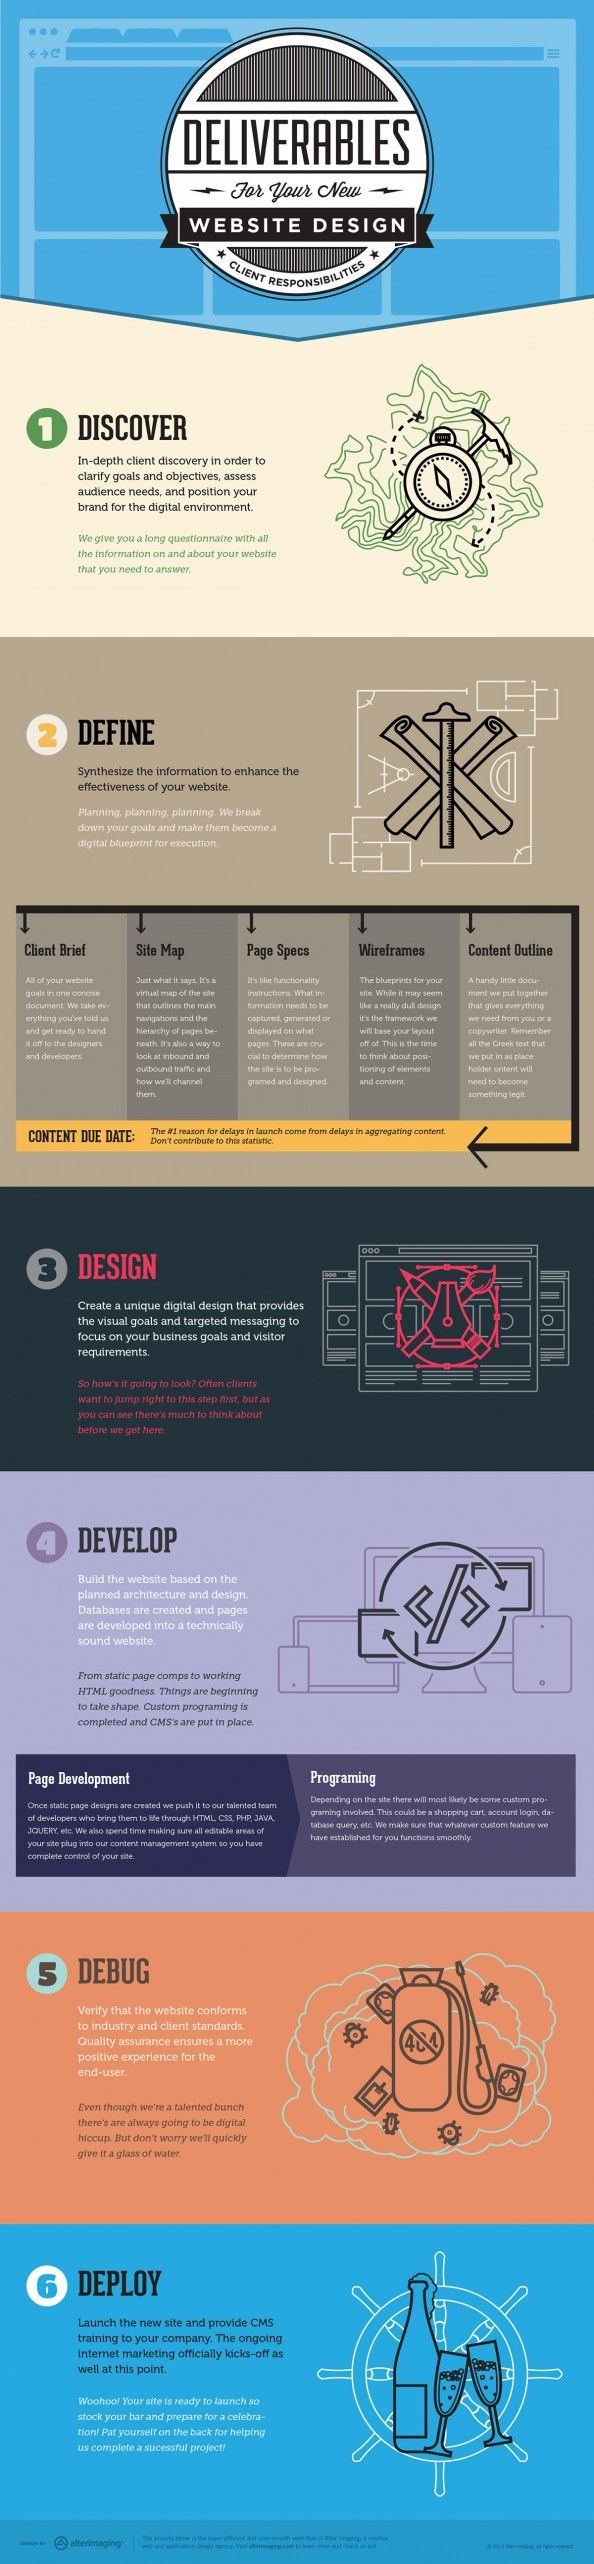 6 Steps to a Successful #WebDesign